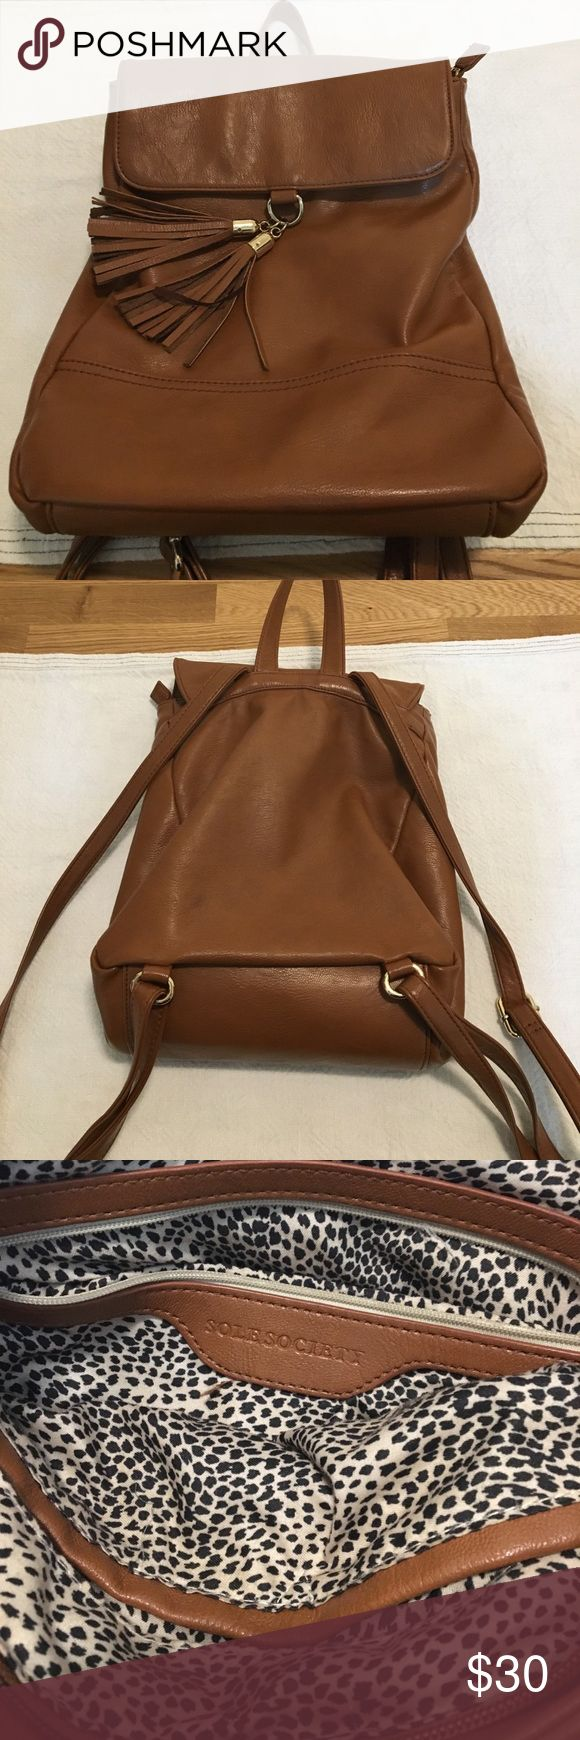 Sole Society backpack - vegan leather Exact item - used once for a festival - great condition! http://m.shop.nordstrom.com/s/sole-society-ellie-backpack/3851061 Sole Society Bags Backpacks